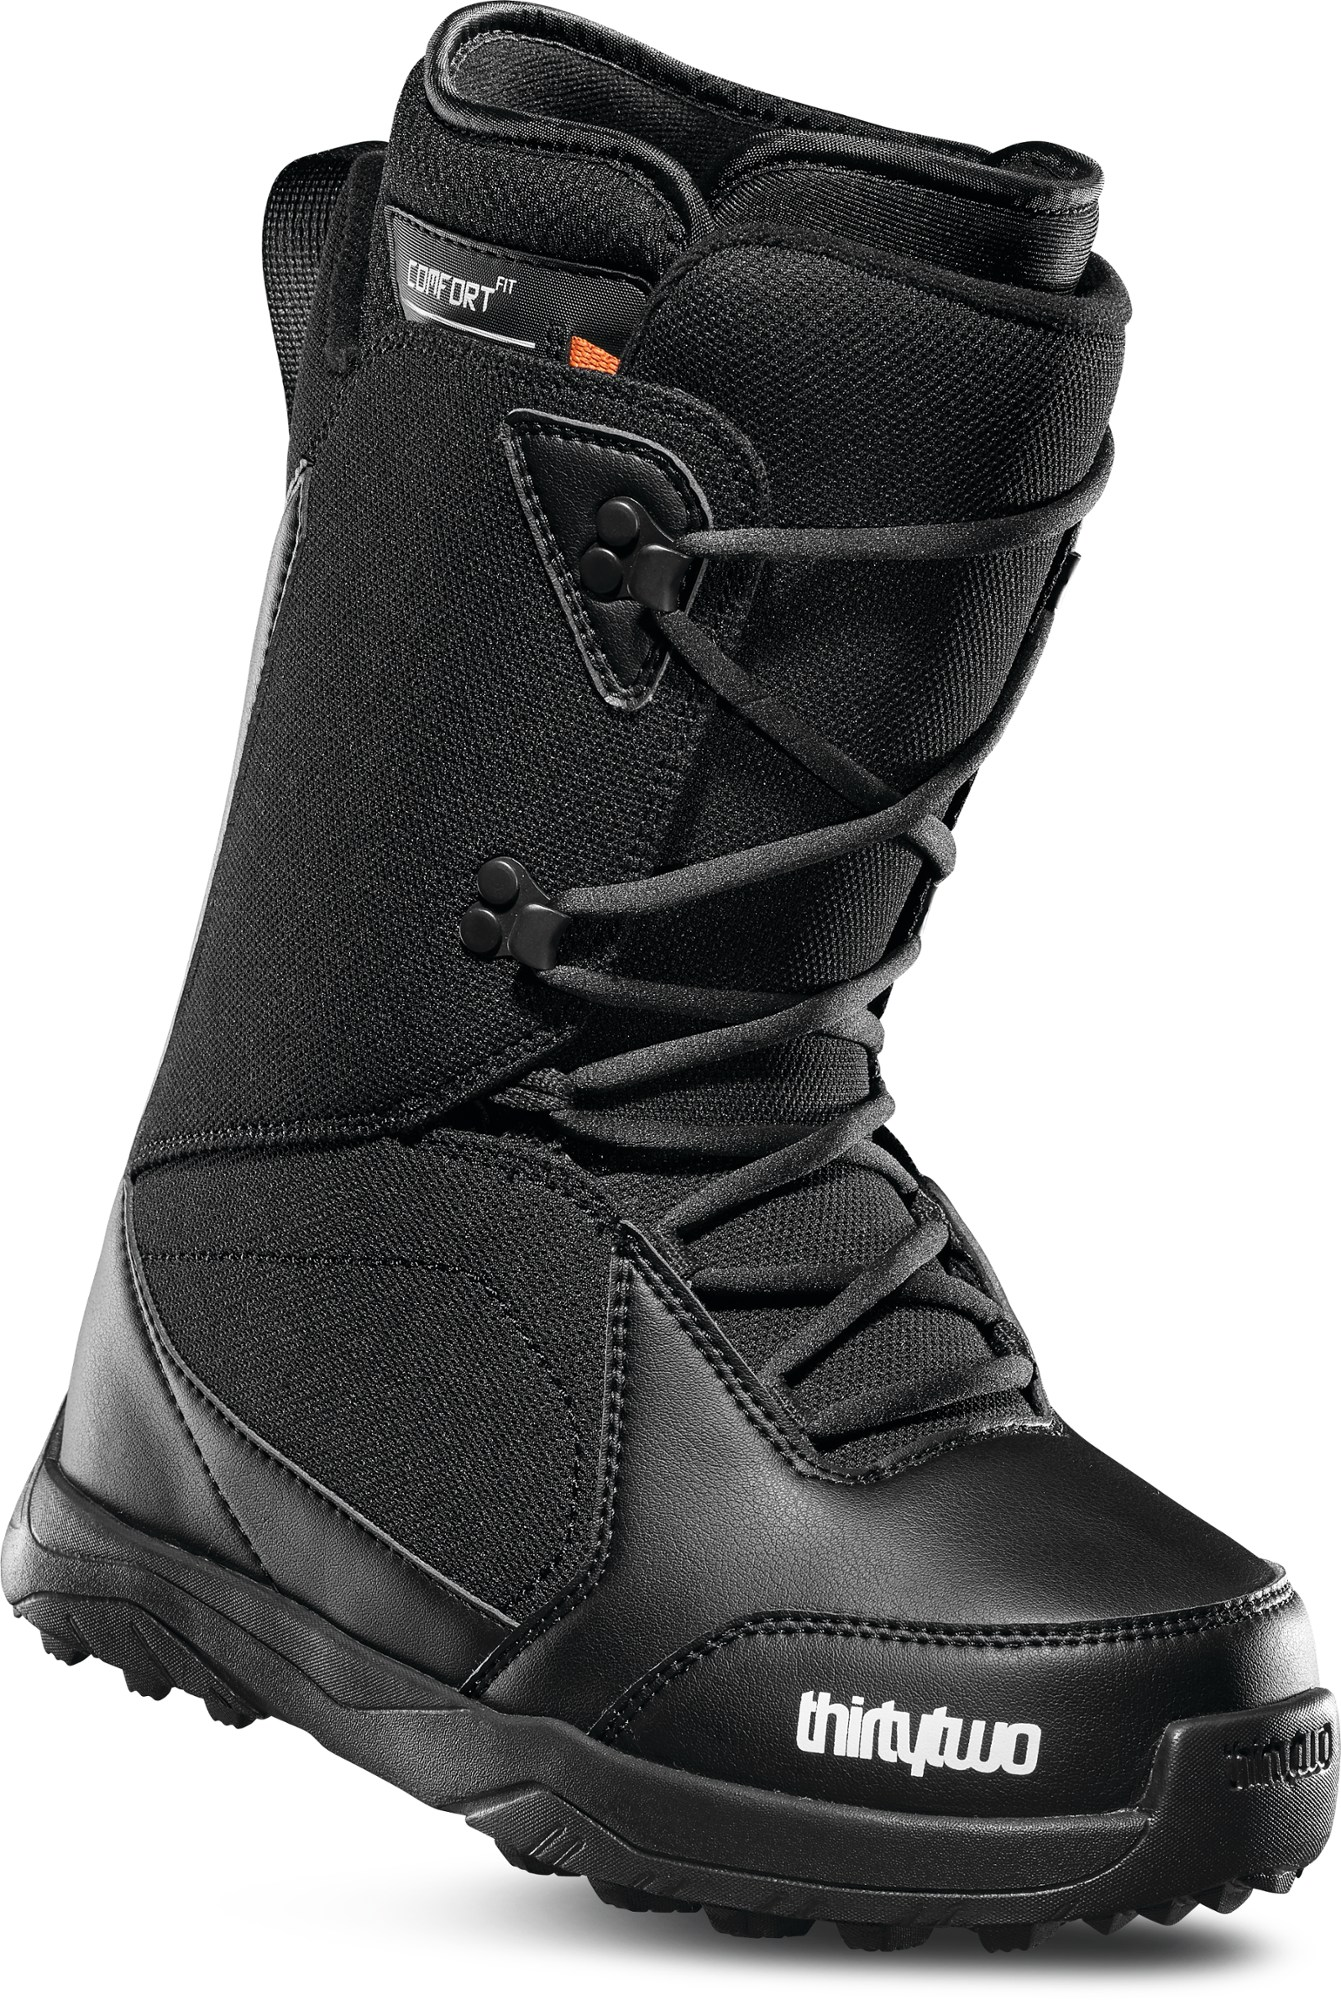 thirtytwo Exit Snowboard Boots - Men's - 2018/2019